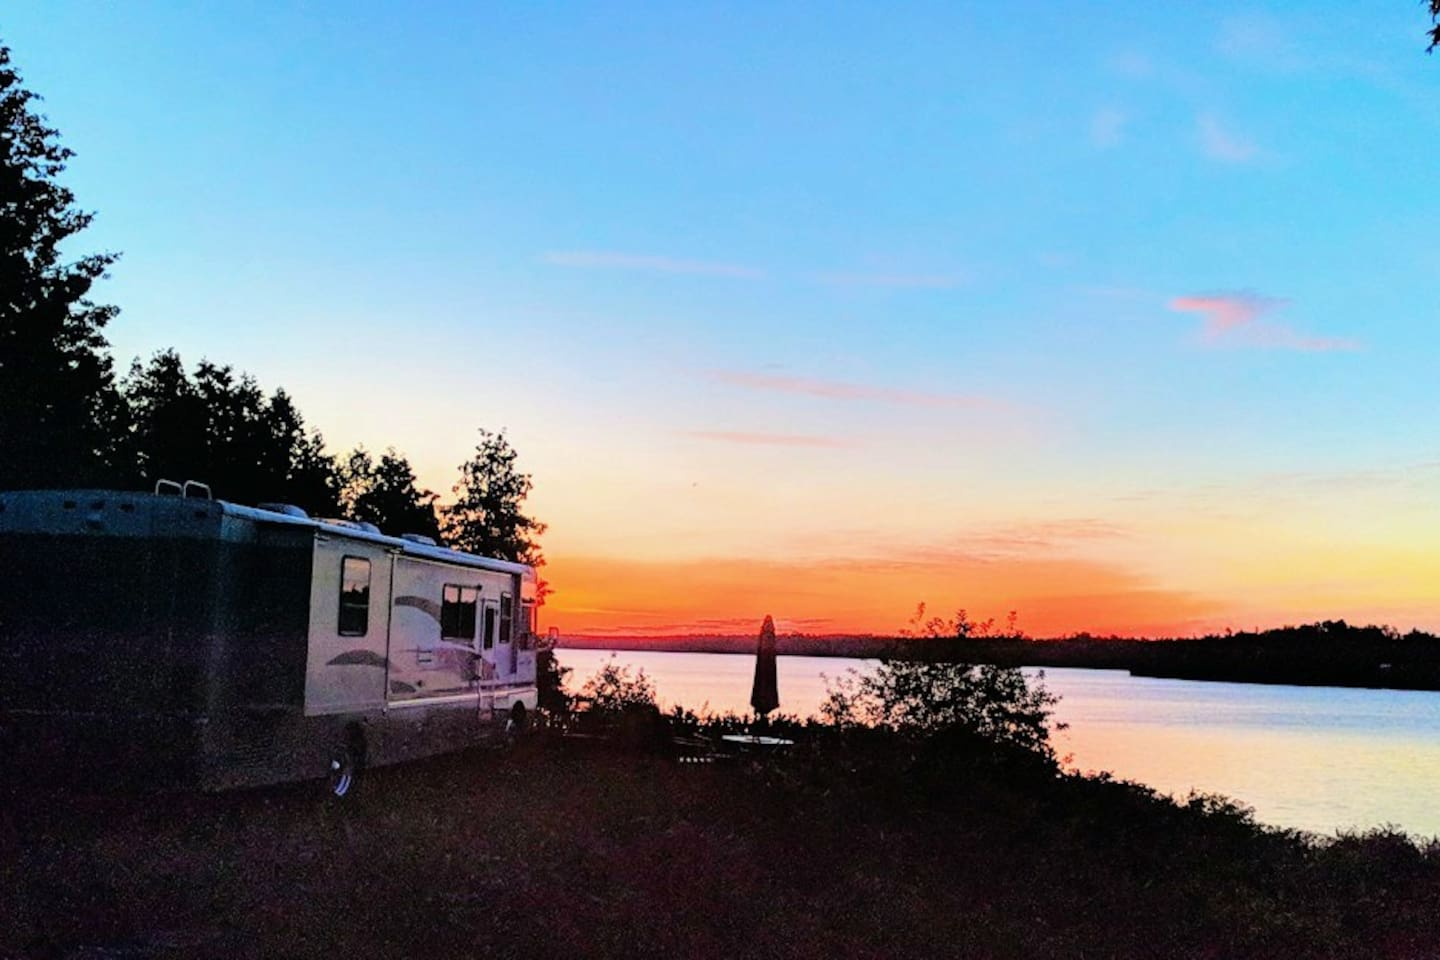 40 foot motor home parked with a beautiful view of the sunrise over South Bay.  A beautiful start to the day!